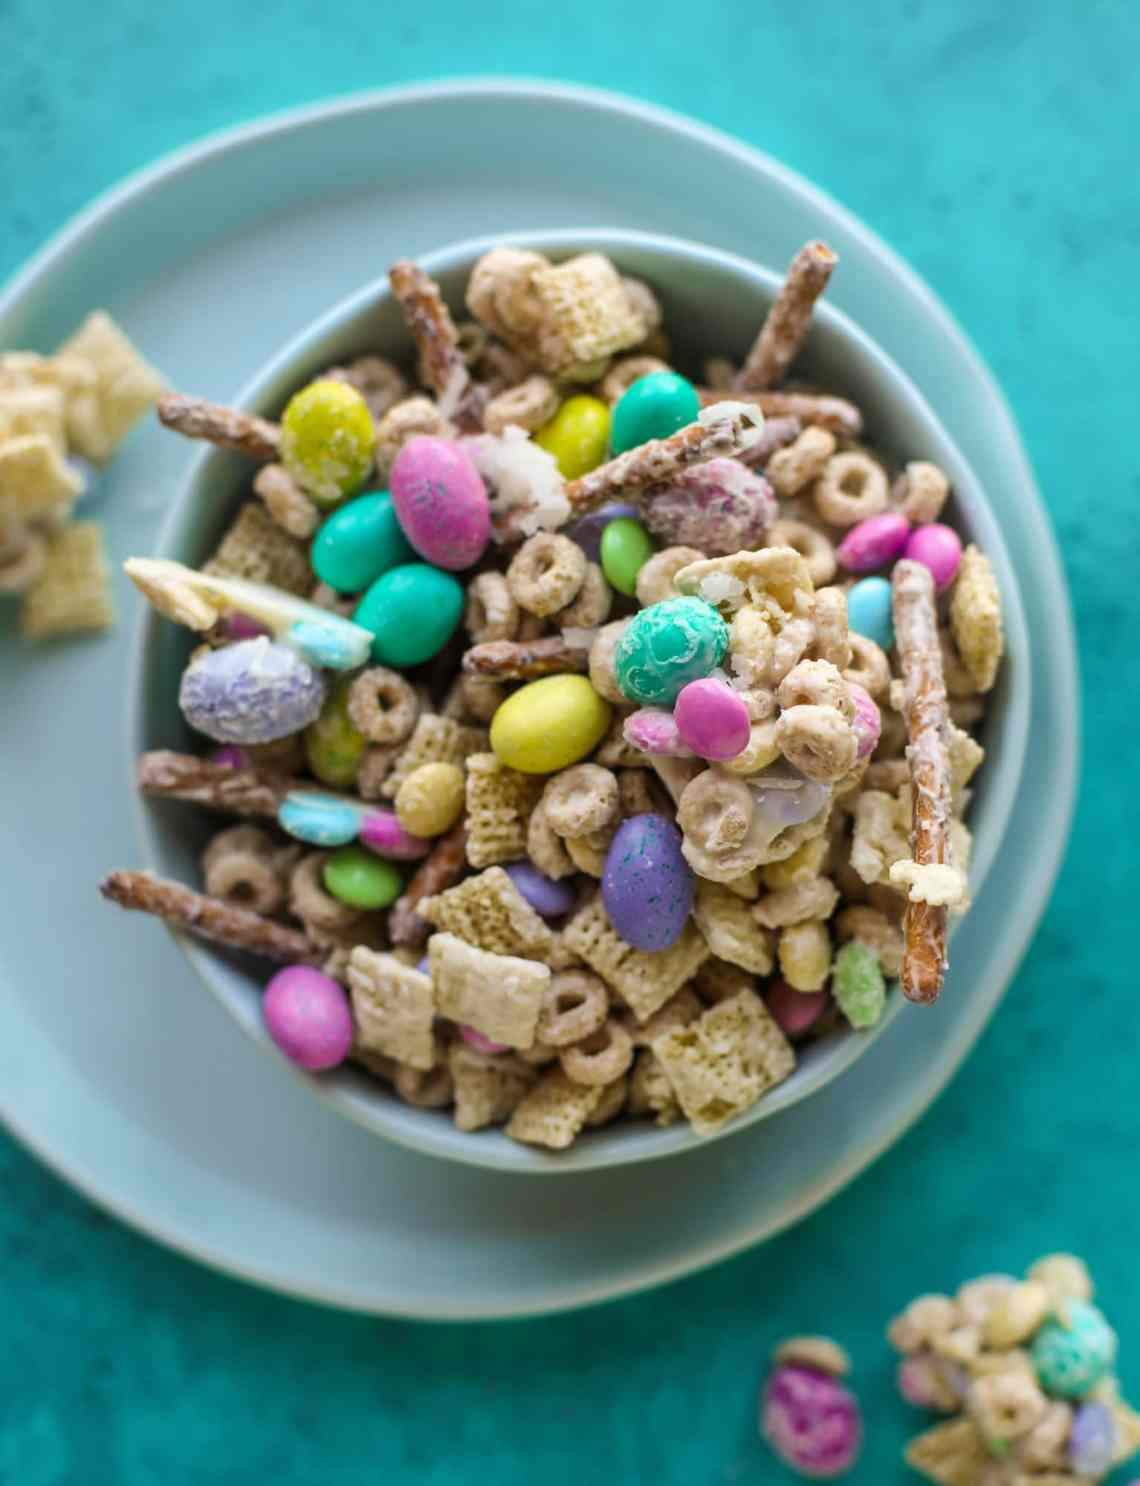 This adorable Easter snack mix is such a fun treat! It's both sweet and salty - you won't be able to stay away from it and neither will the kids!